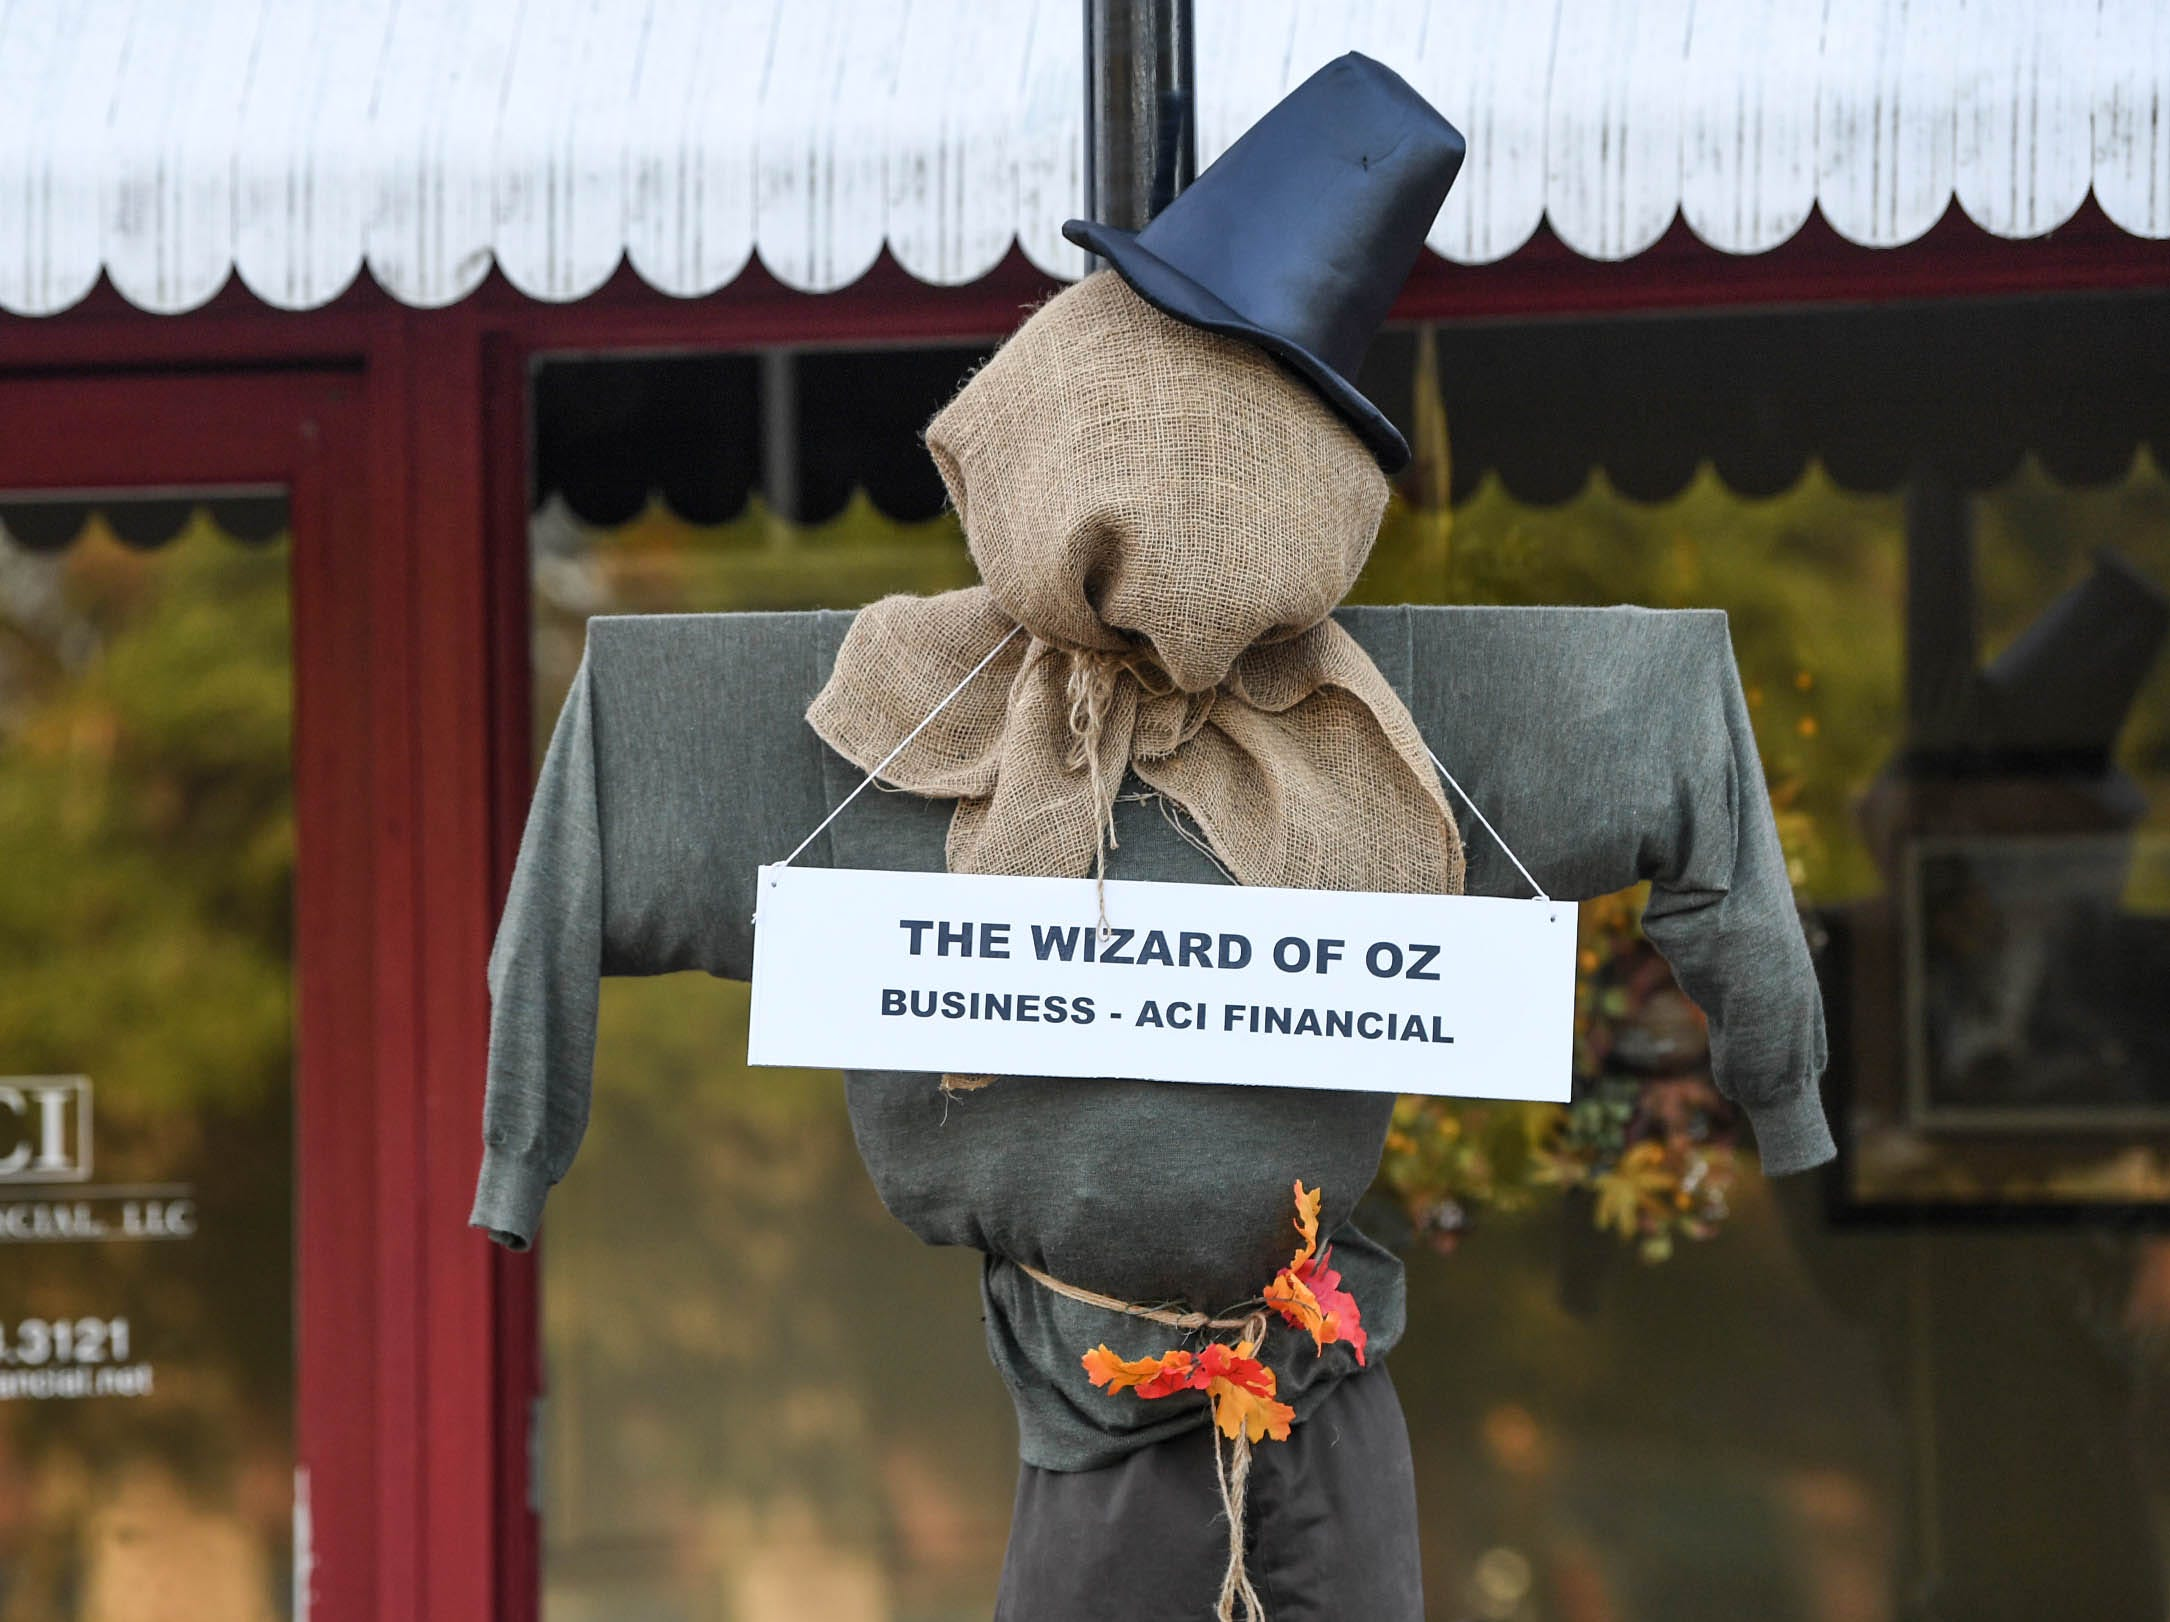 """""""The Wizard of Oz"""", by ACI Financial, is one of many displays in The Pendleton Scarecrow Contest leading up to the 20th Fall Harvest Festival in the village green Saturday, October 6 from 10 a.m. to 5 p.m. The annual contest in Pendleton for businesses, individuals, groups, organizations and churches who create fun not scary Scarecrows. People driving around the downtown square can see different theme scarecrows."""